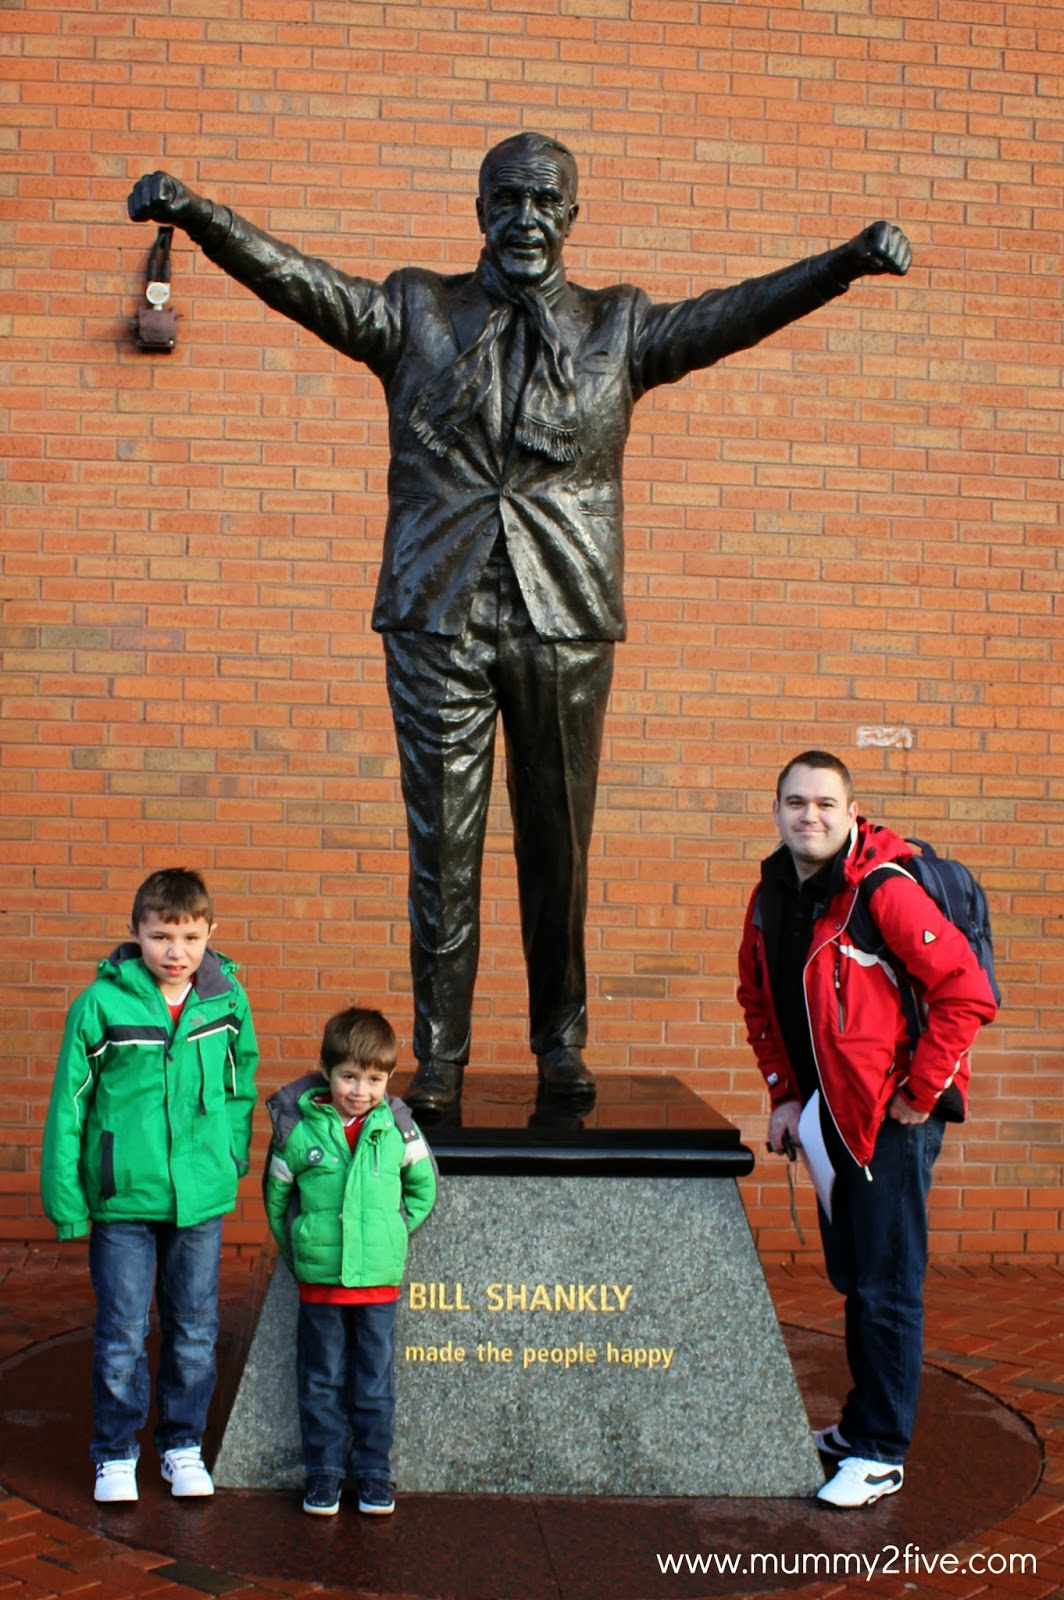 Bronze Bill Shankly statue at Liverpool Football Club Anfield